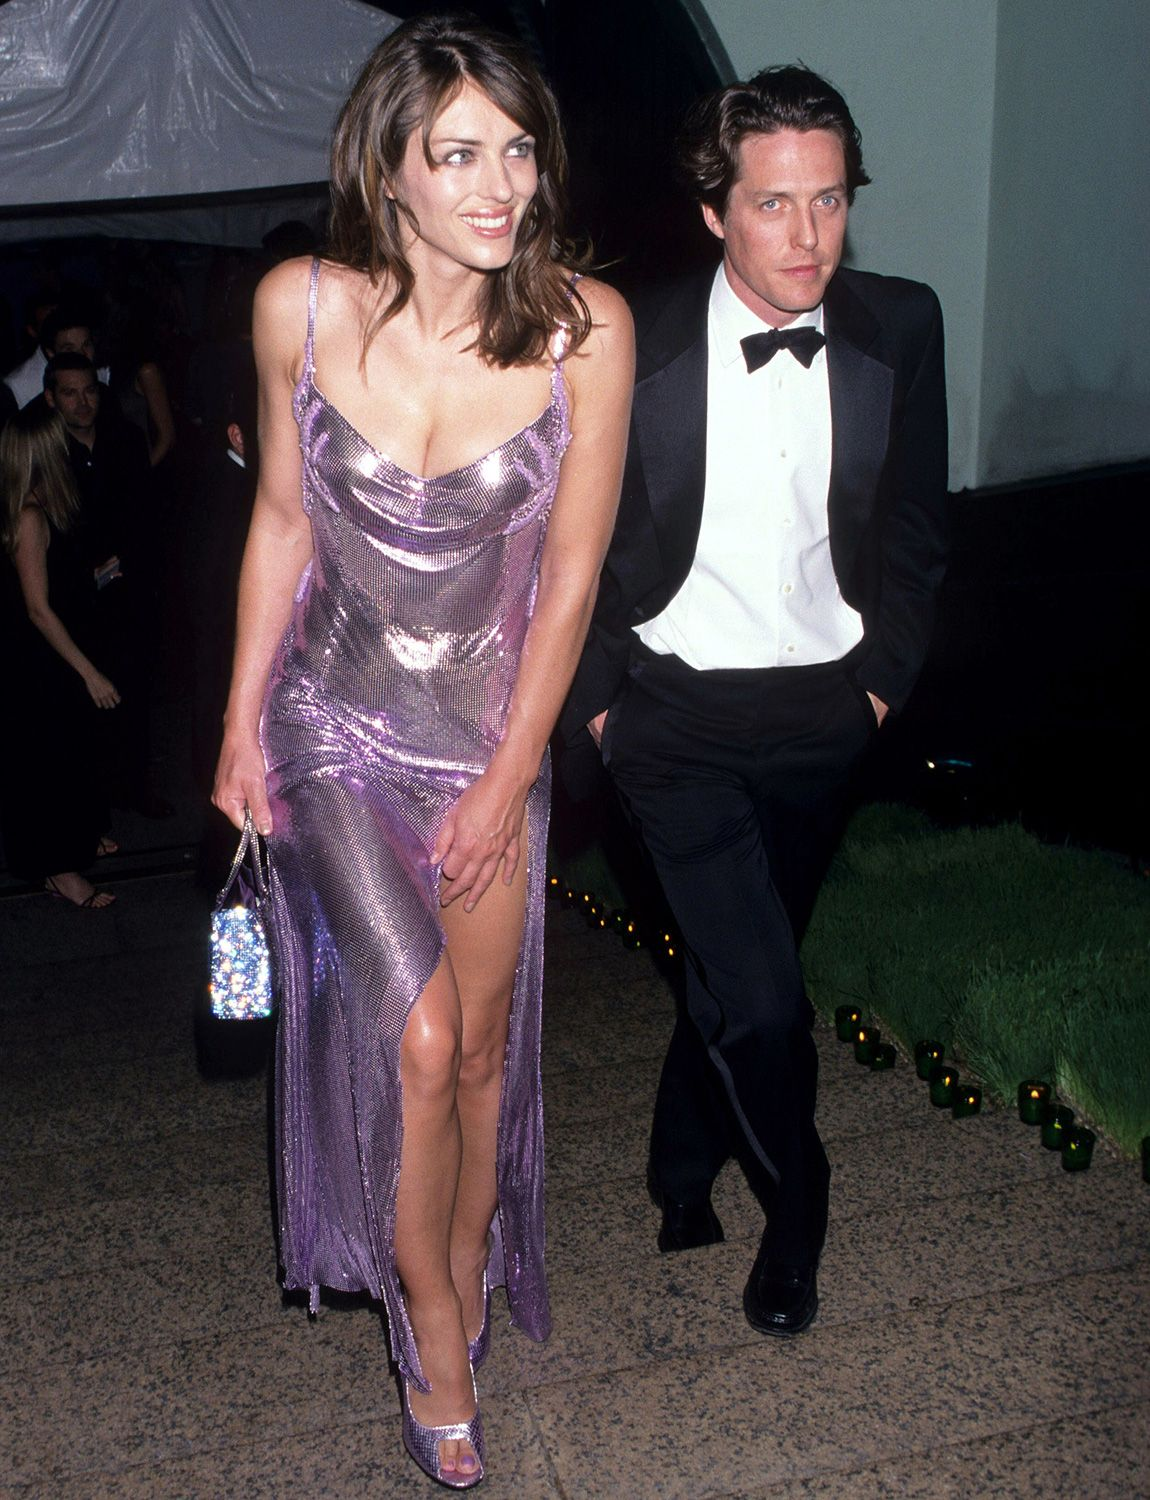 Elizabeth Hurley Rewears Her Iconic Versace Dress 21 Years Later And We Re Doing A Double Take In 2020 Fashion Elizabeth Hurley Versace Dress